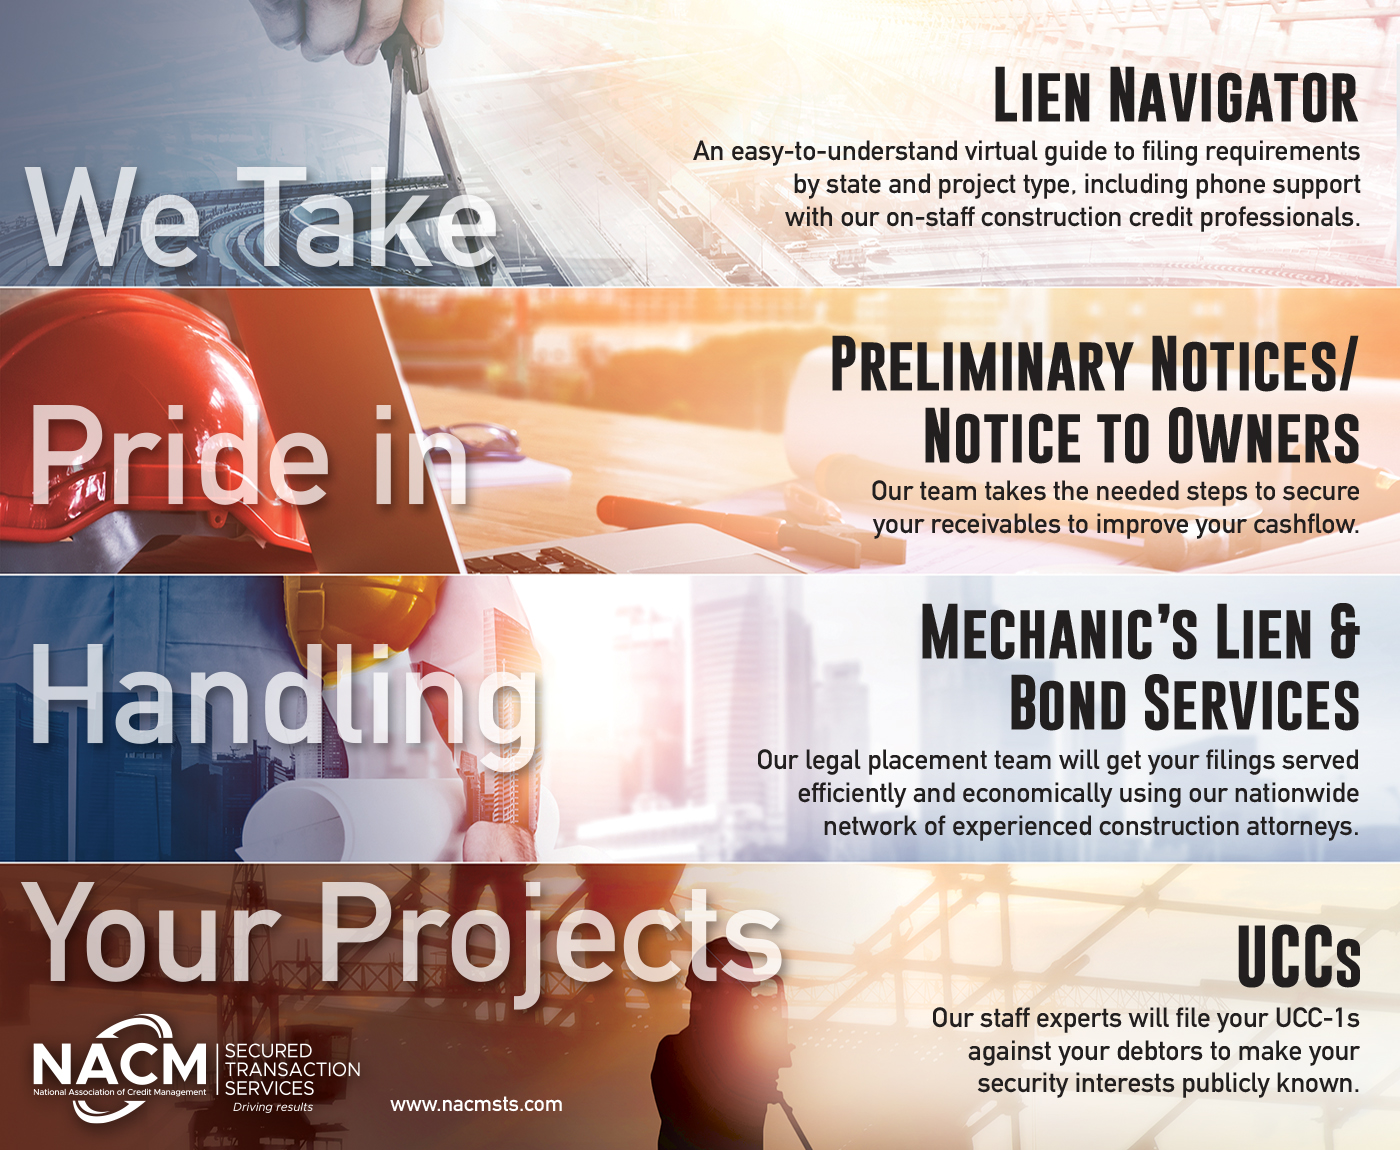 NACM Secured Transaction Services | We take pride in handling your projects.